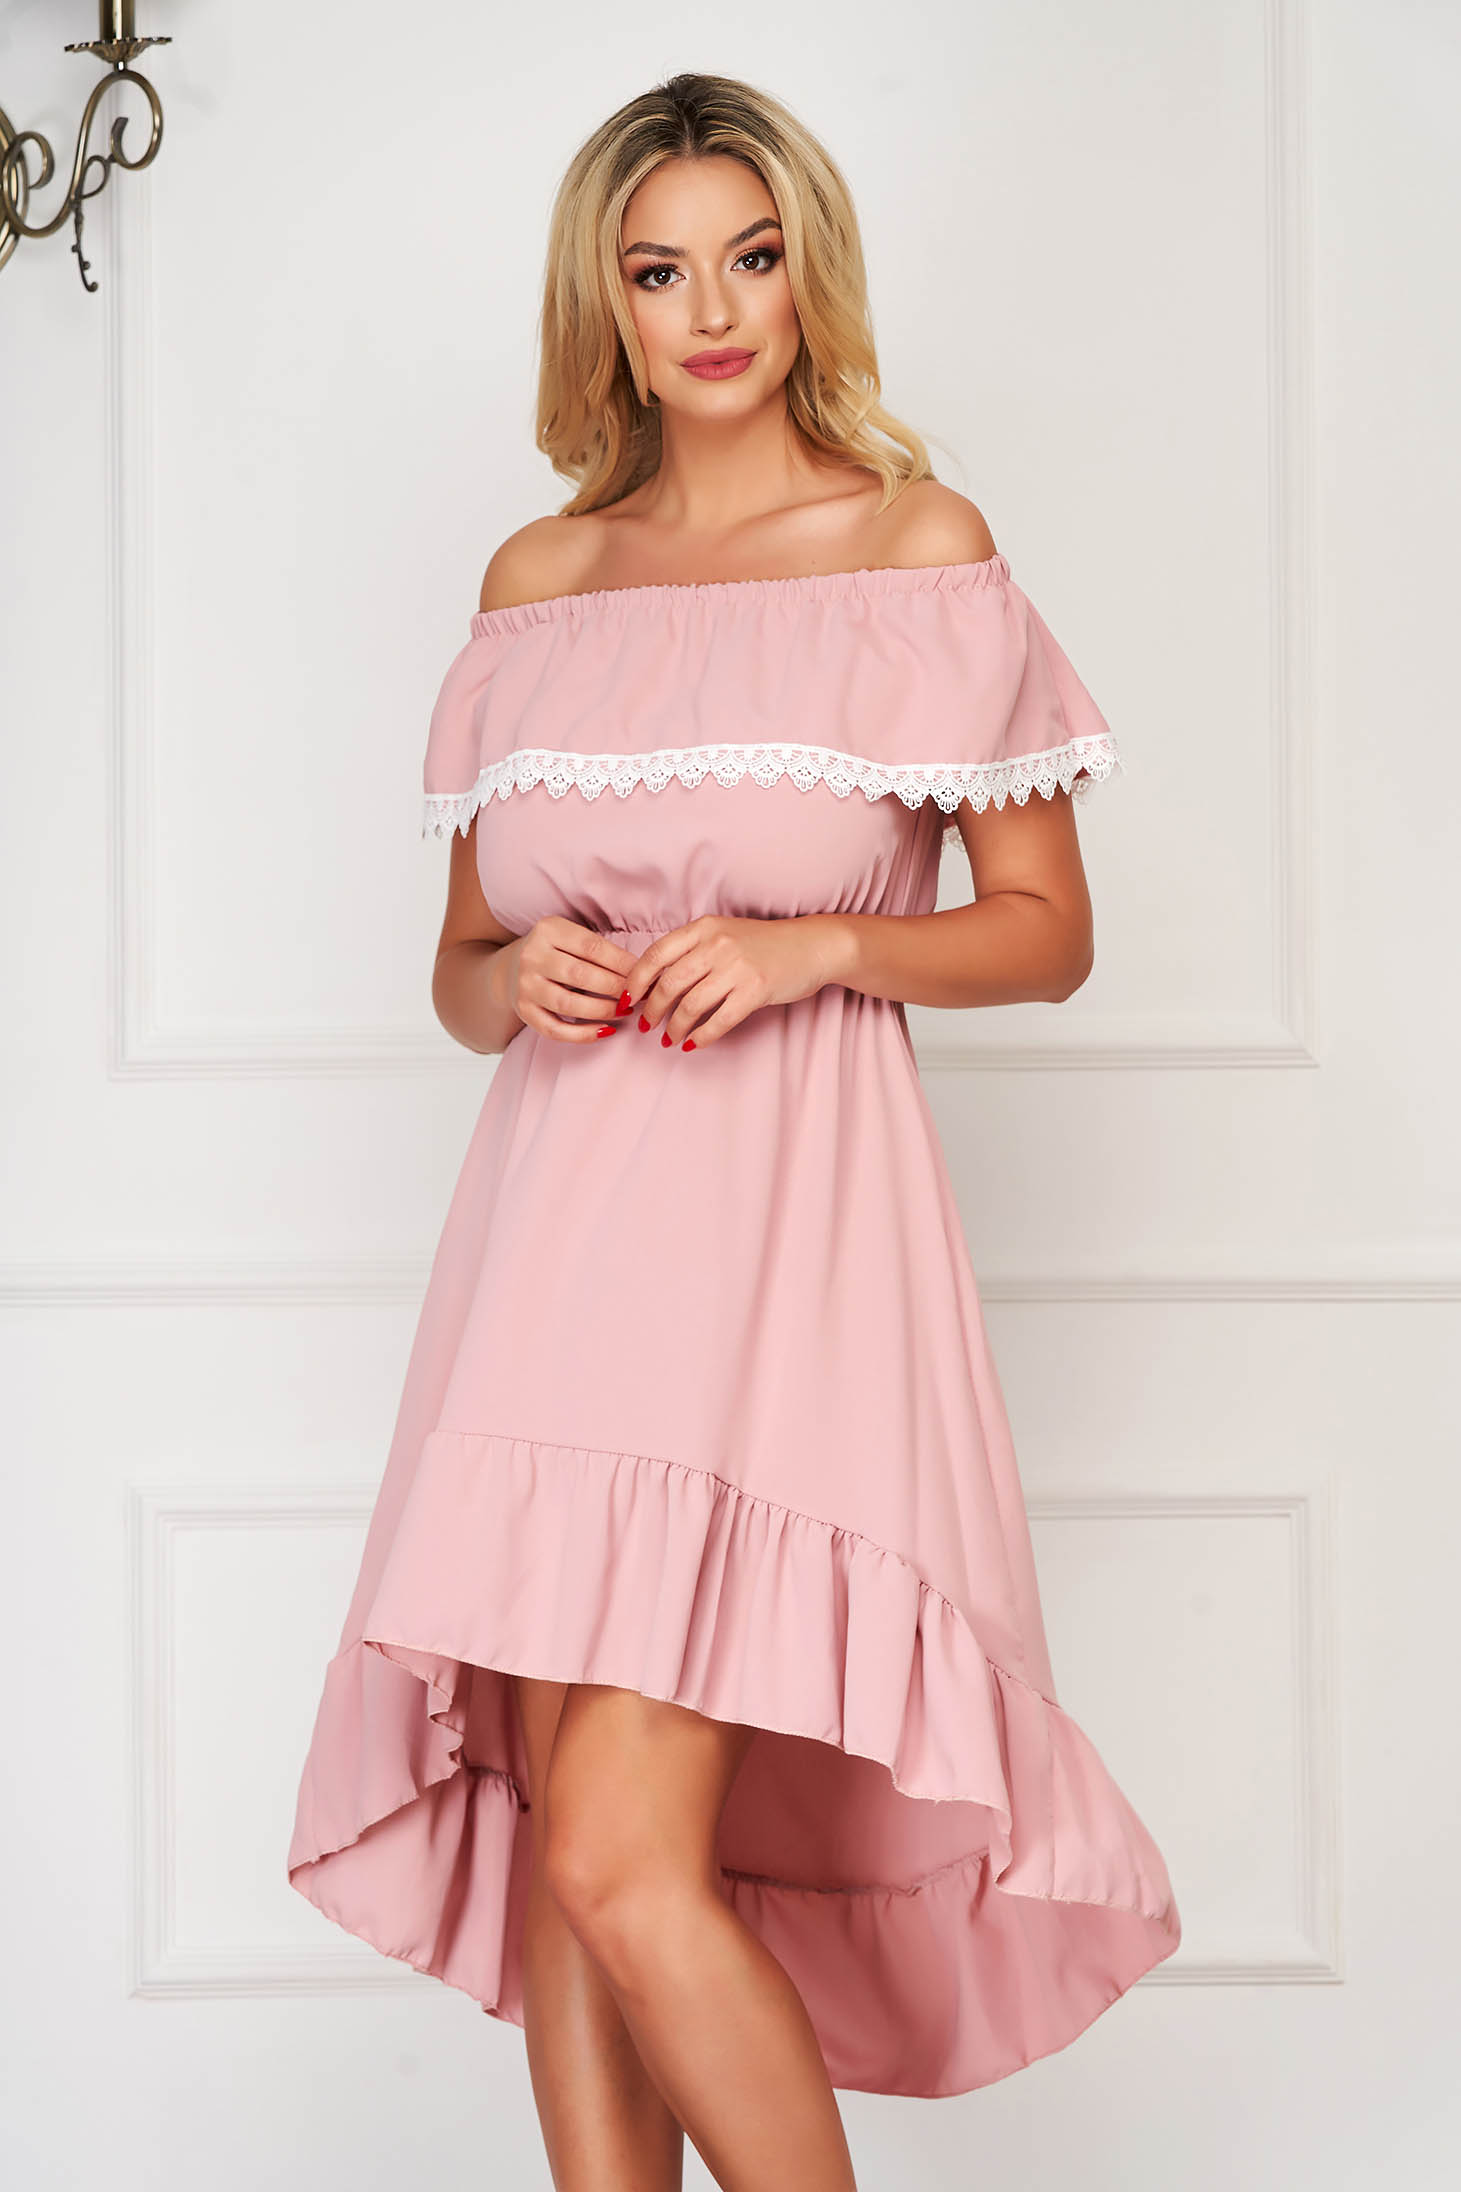 Lightpink dress asymmetrical daily off-shoulder with ruffles on the chest